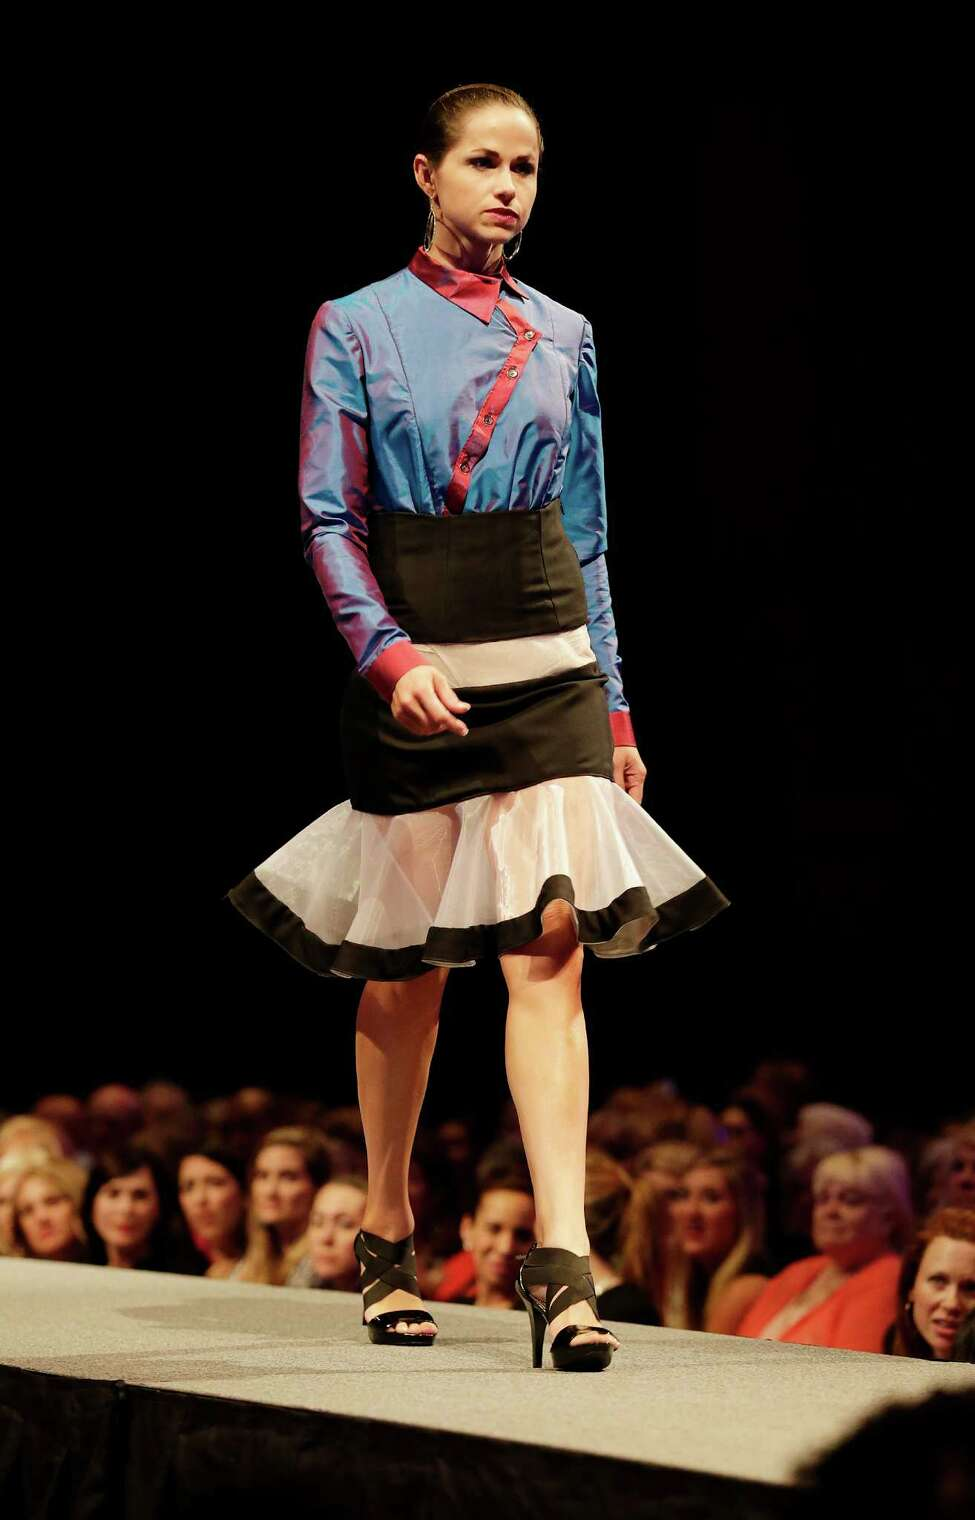 Clothing designs by University of the Incarnate Word student Kimberly Howard at the 2015 Cutting Edge Fiesta Fashion Show at the Tobin Center on Tuesday, Apr. 14, 2015.